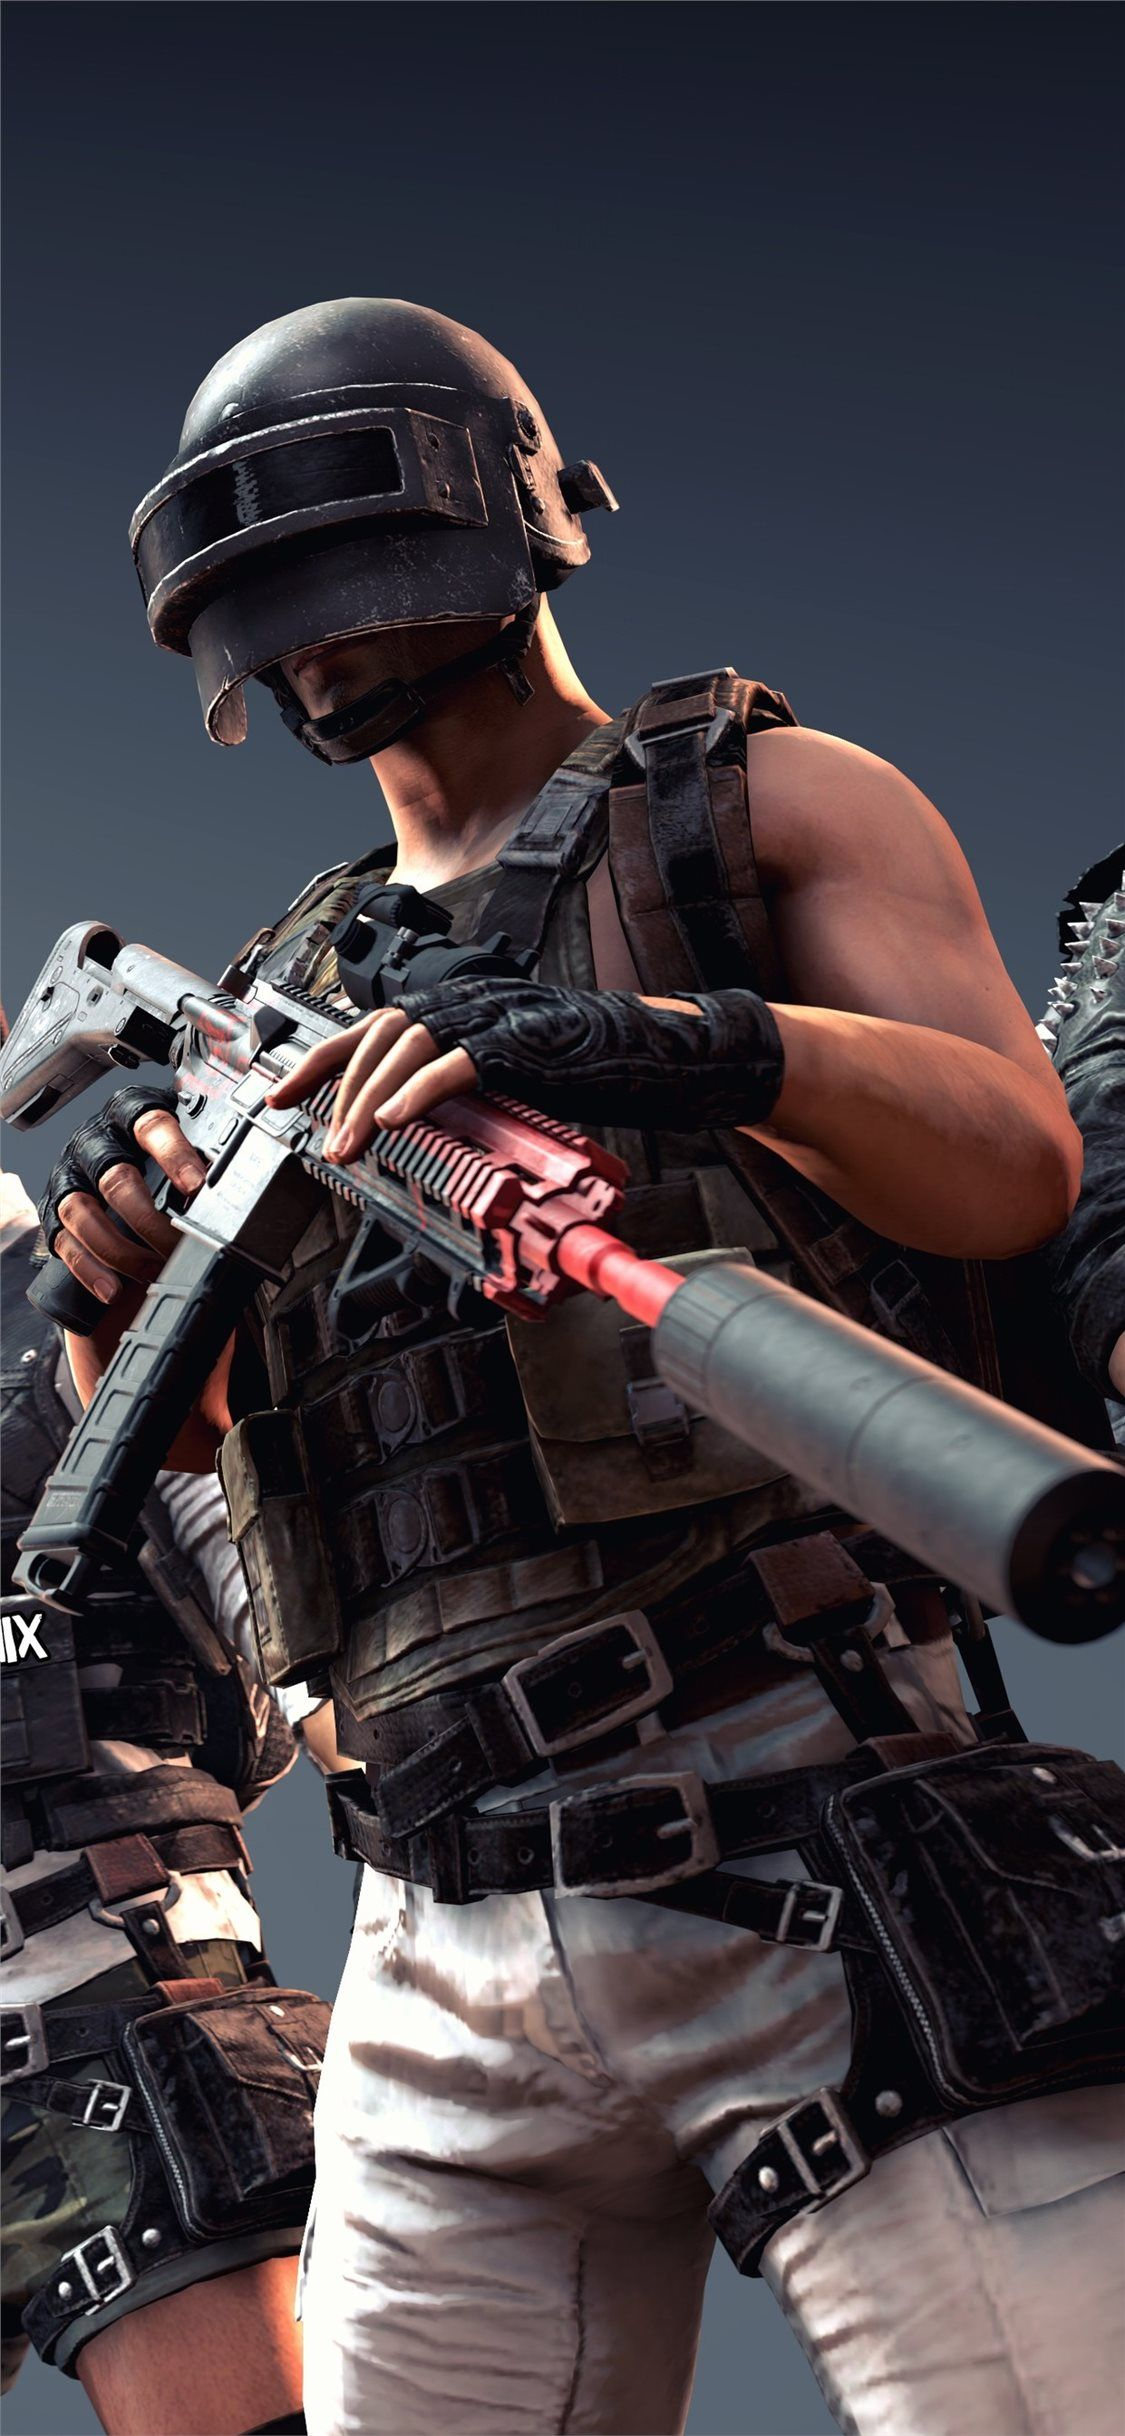 Free download the 2019 pubg 5k wallpaper ,beaty your